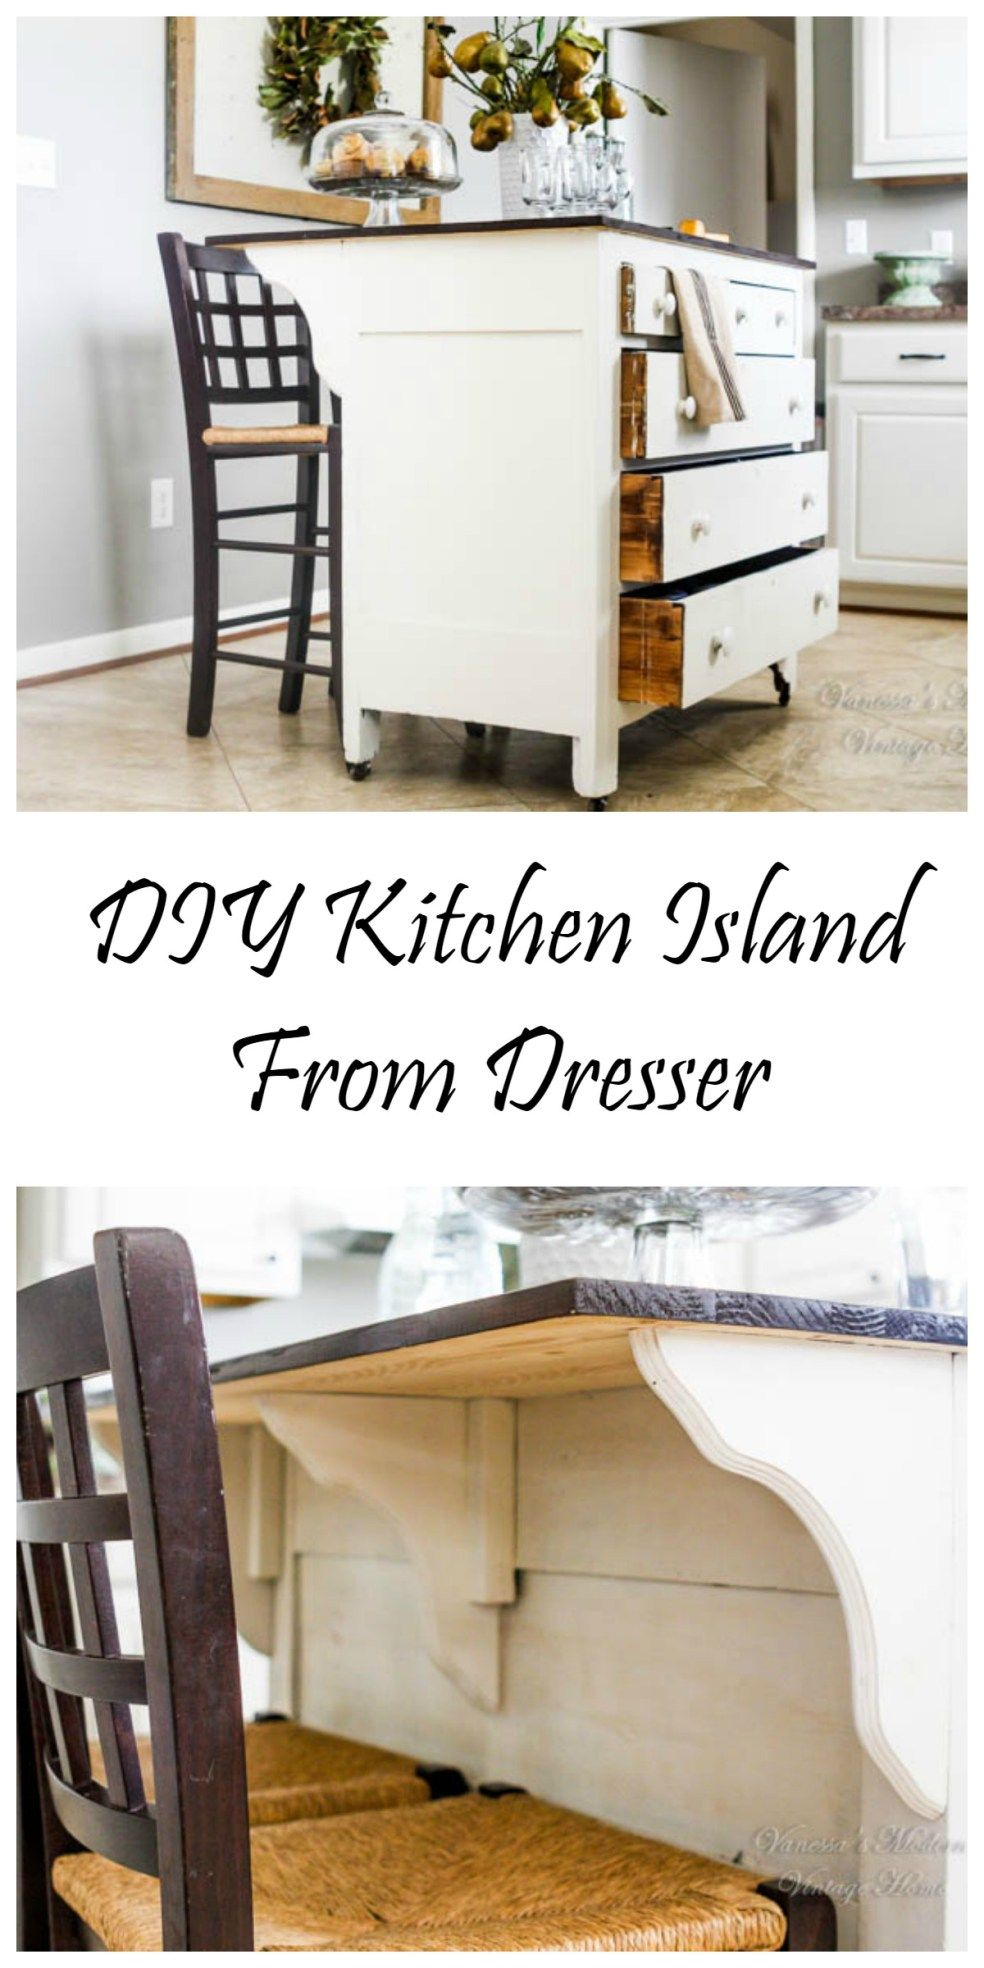 Need Kitchen Storage? Make a kitchen Island from a dresser ...